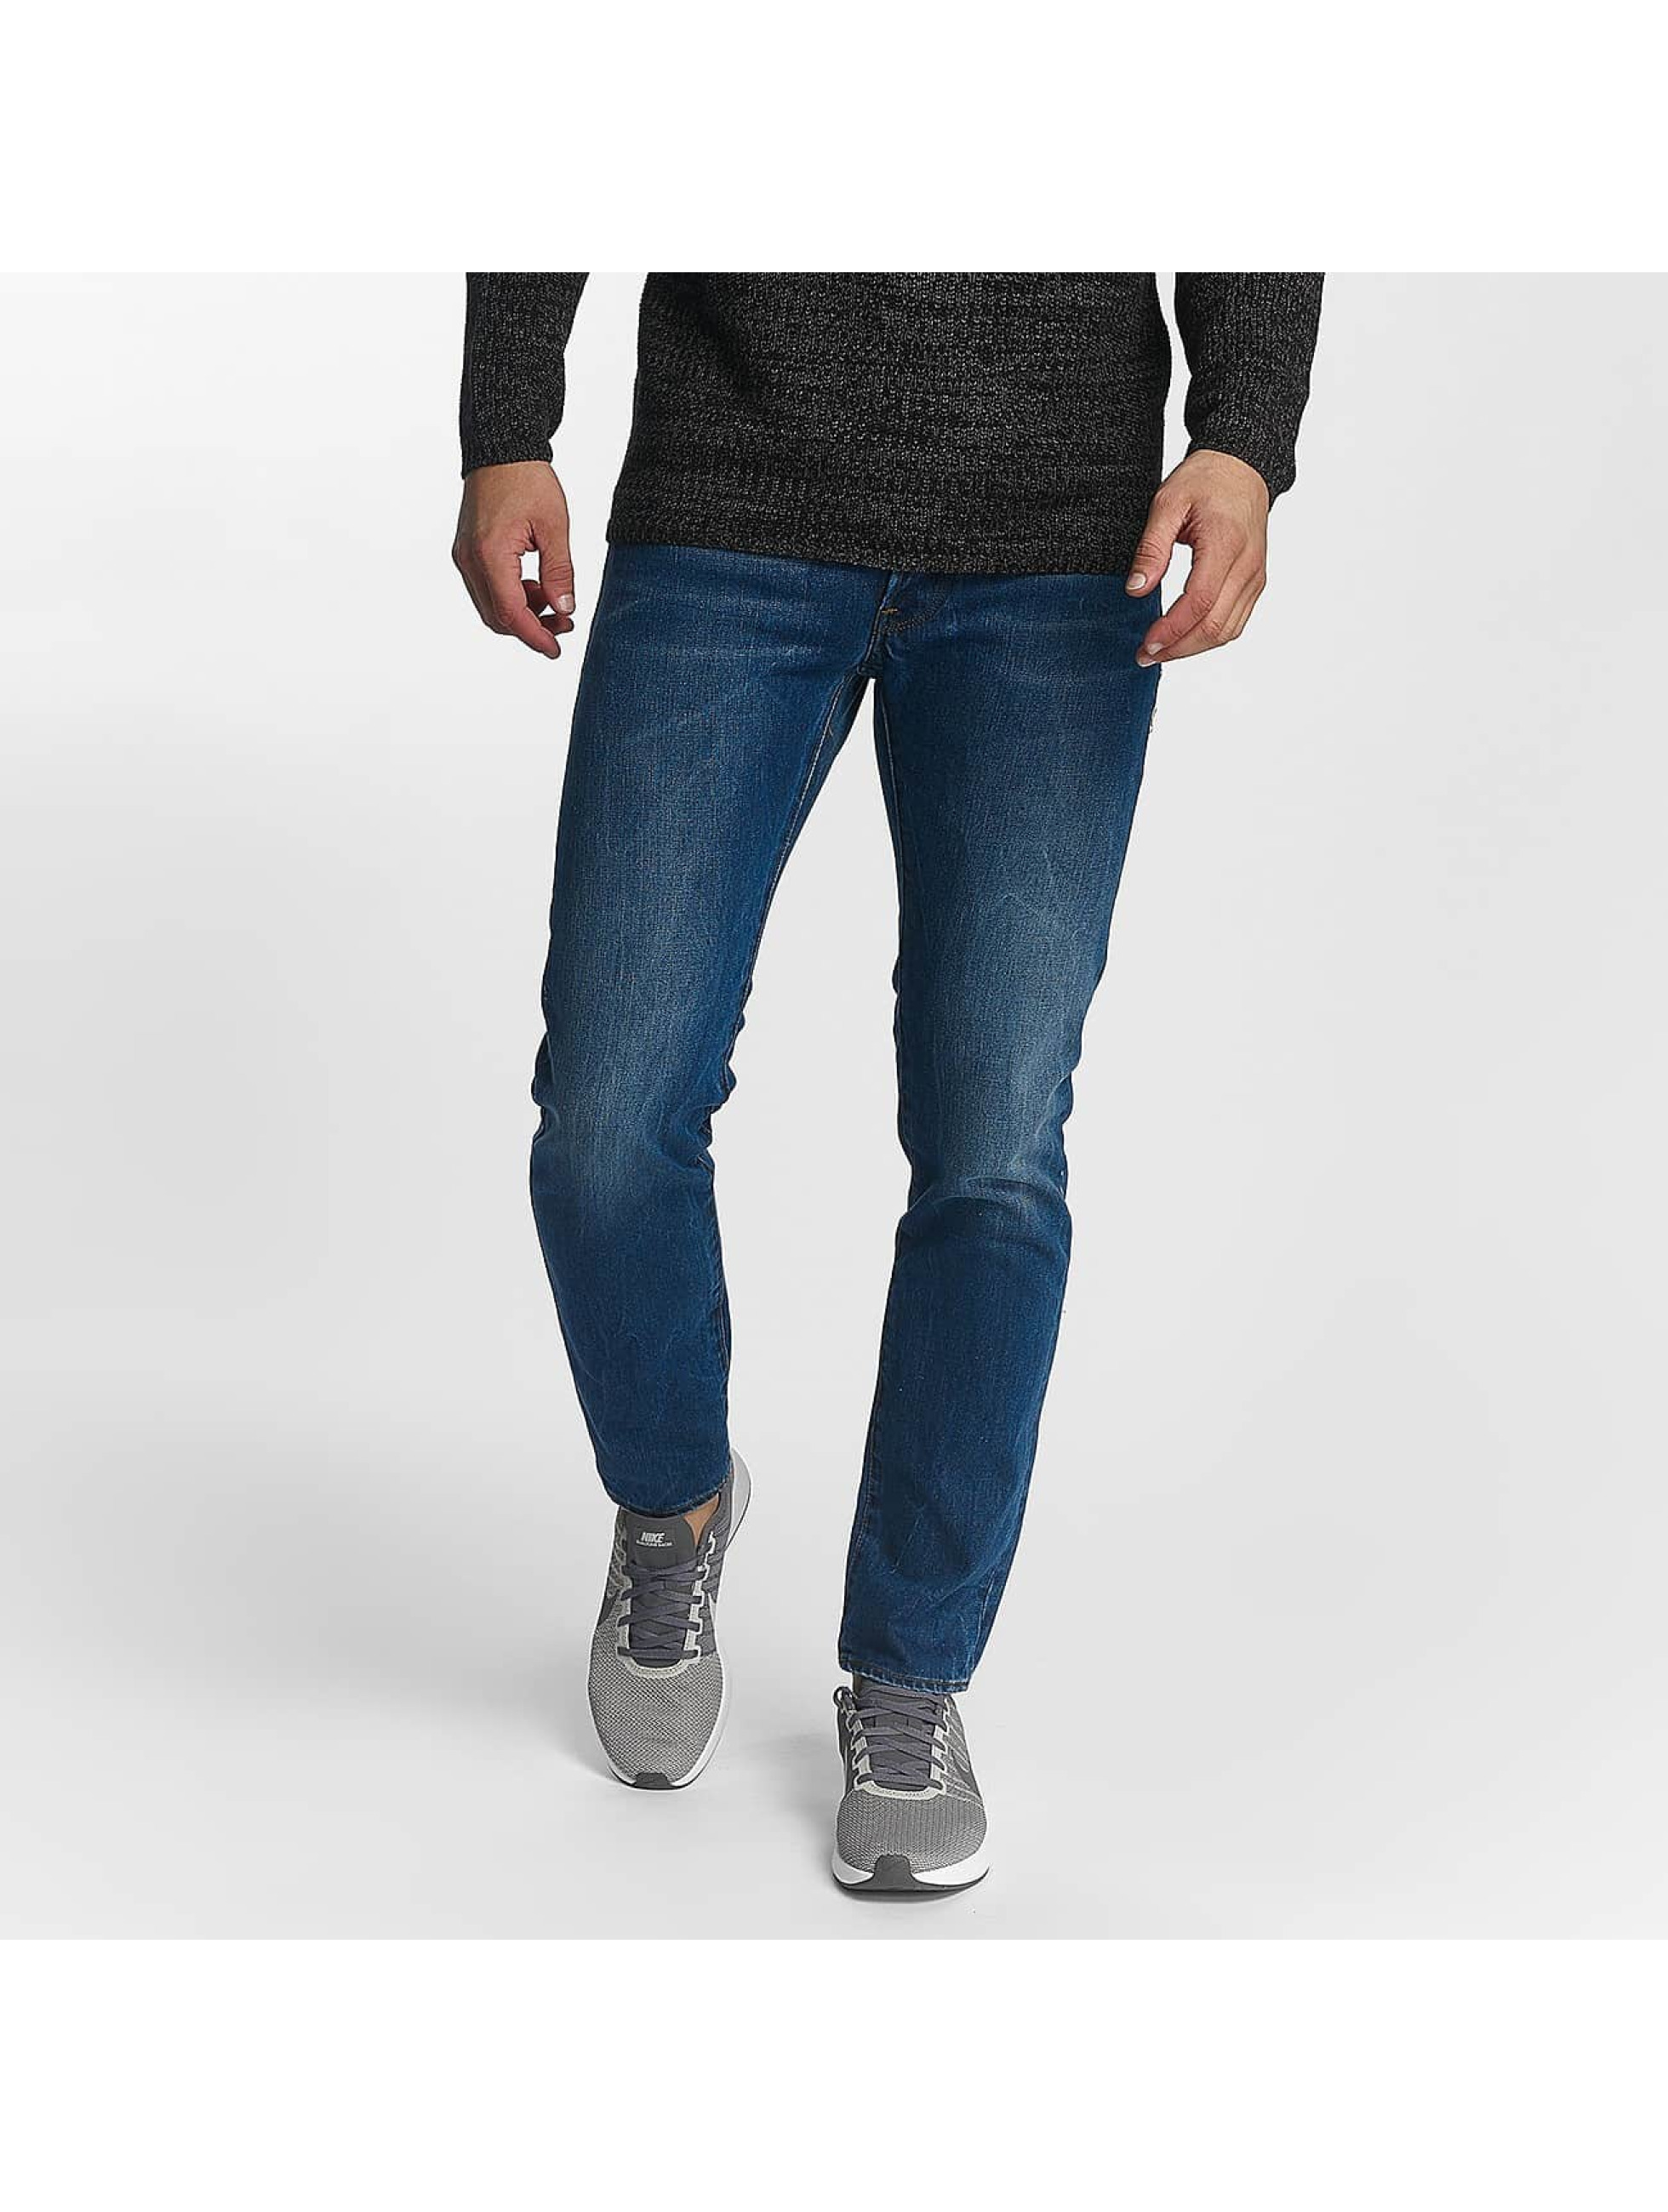 G-Star Männer Slim Fit Jeans Slim Fit in blau